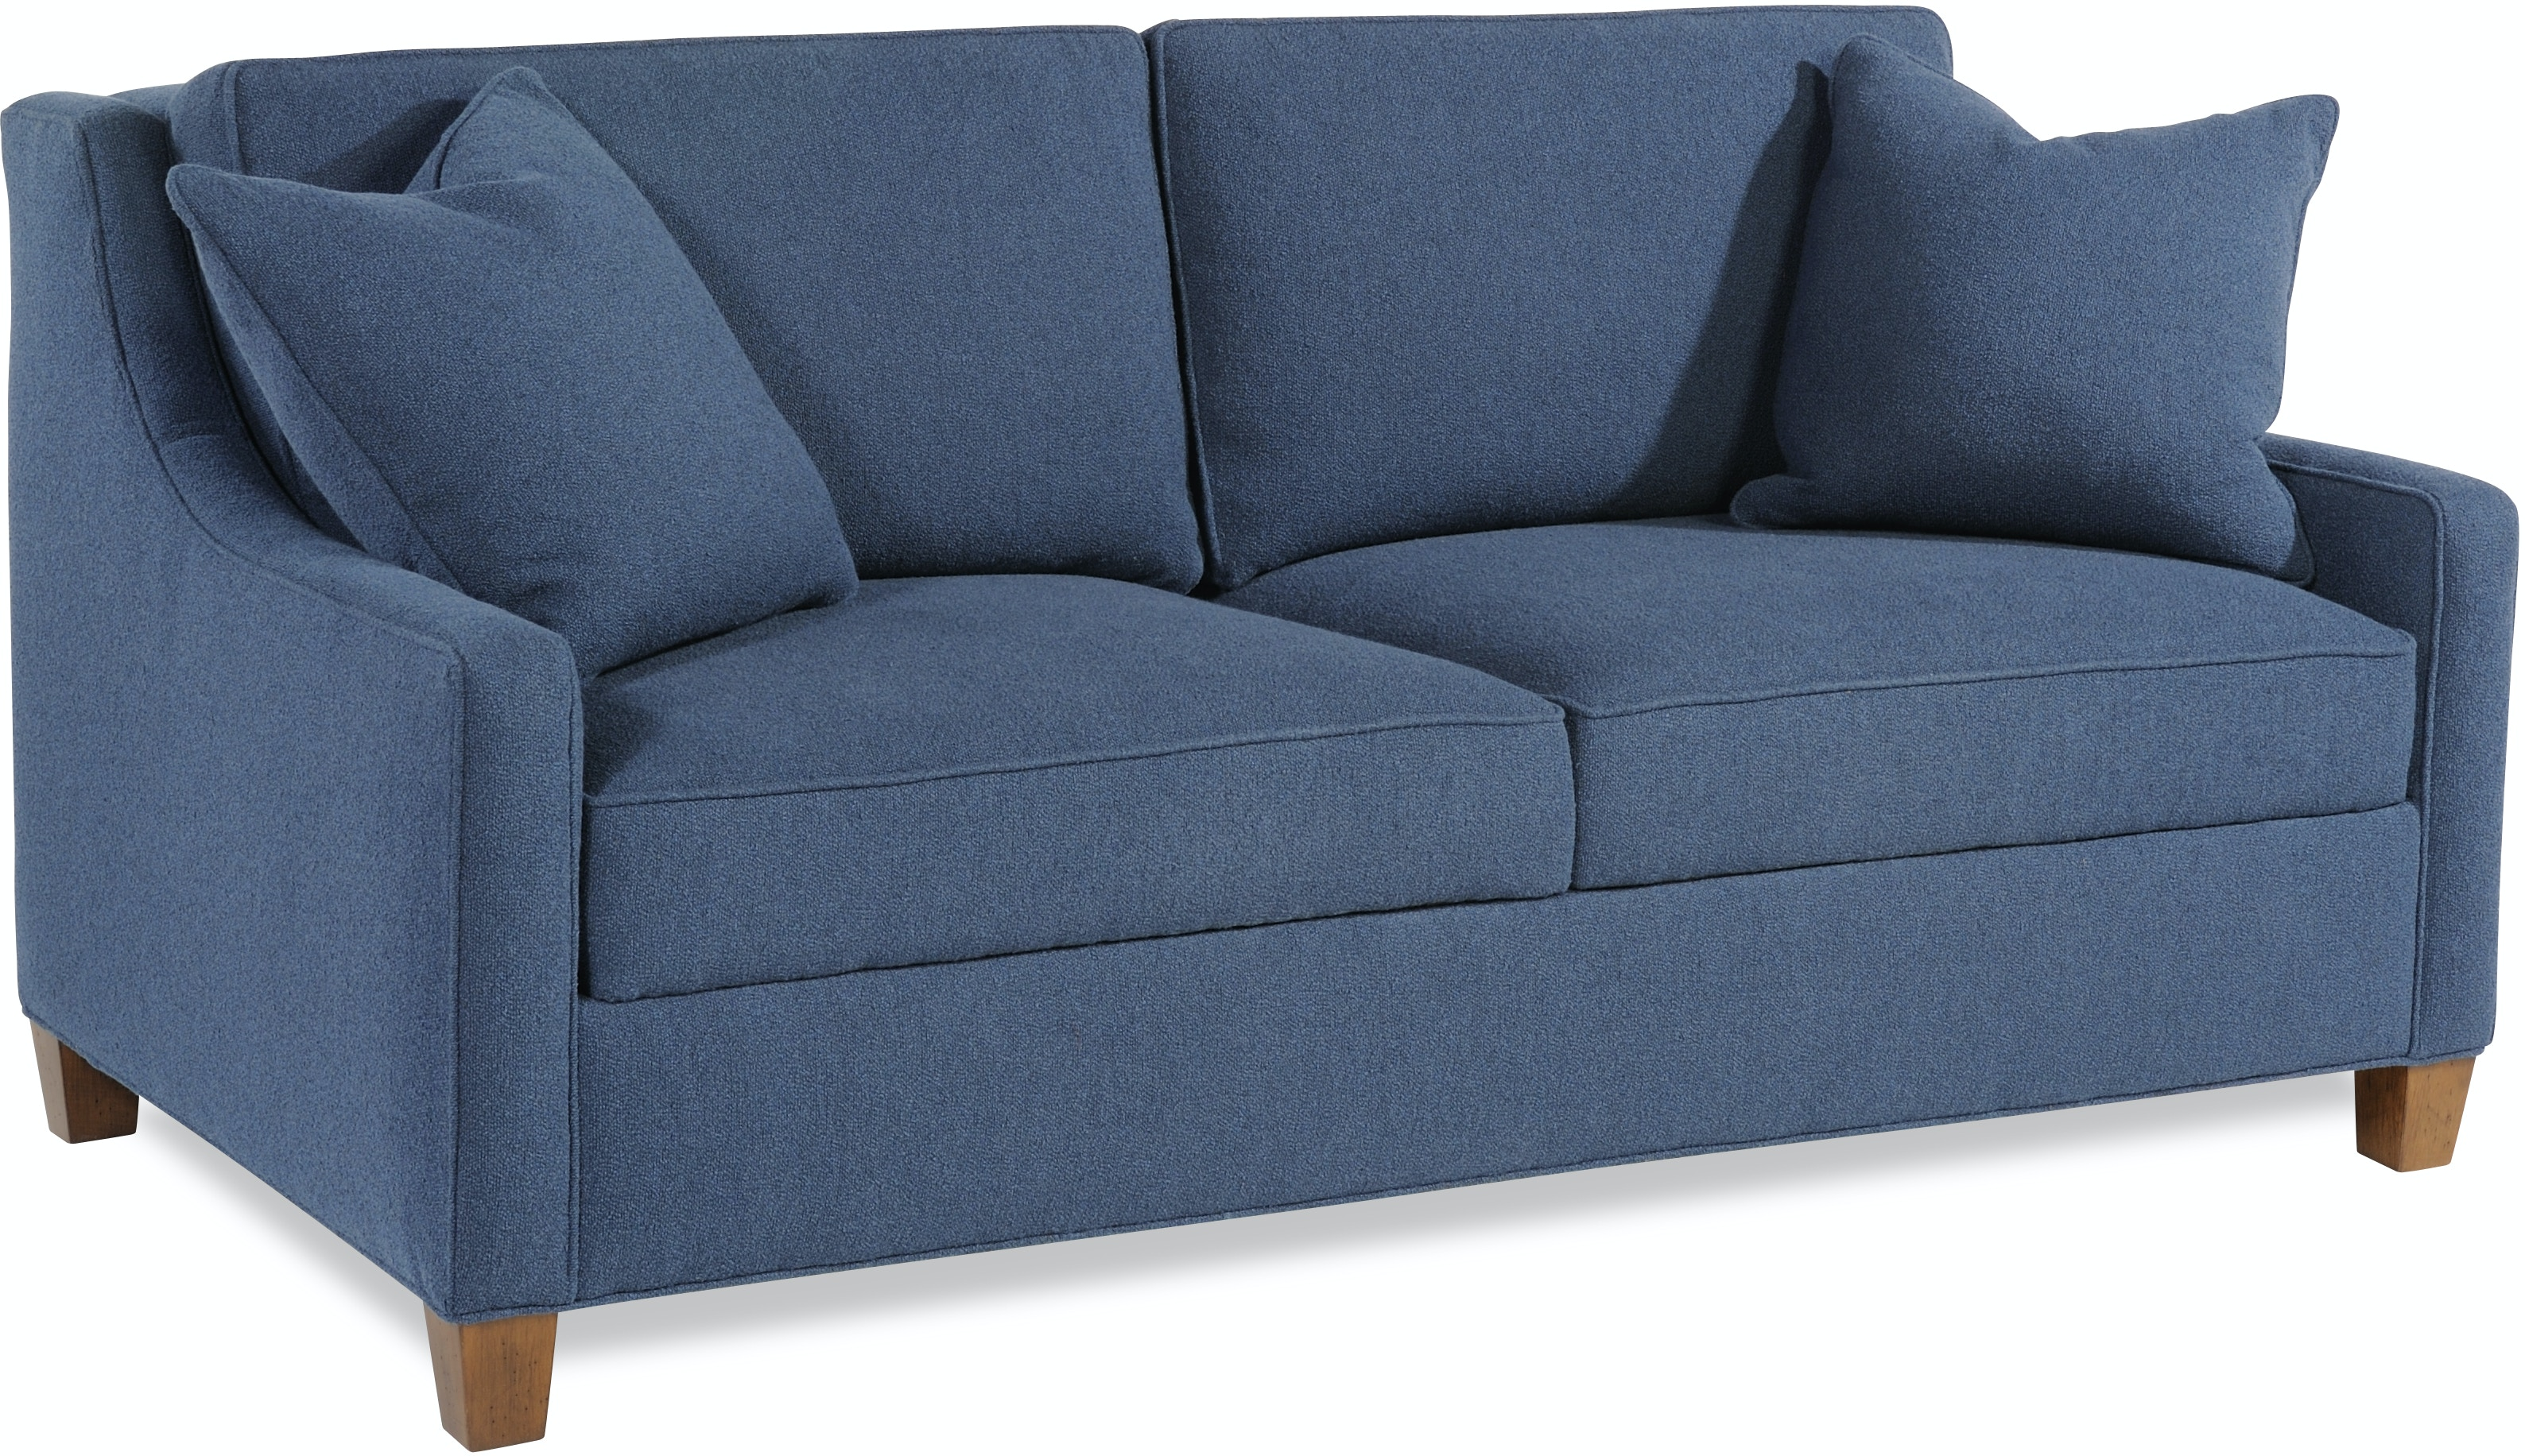 Taylor King Furniture M3916Q Living Room Connor Queen Sleeper Sofa